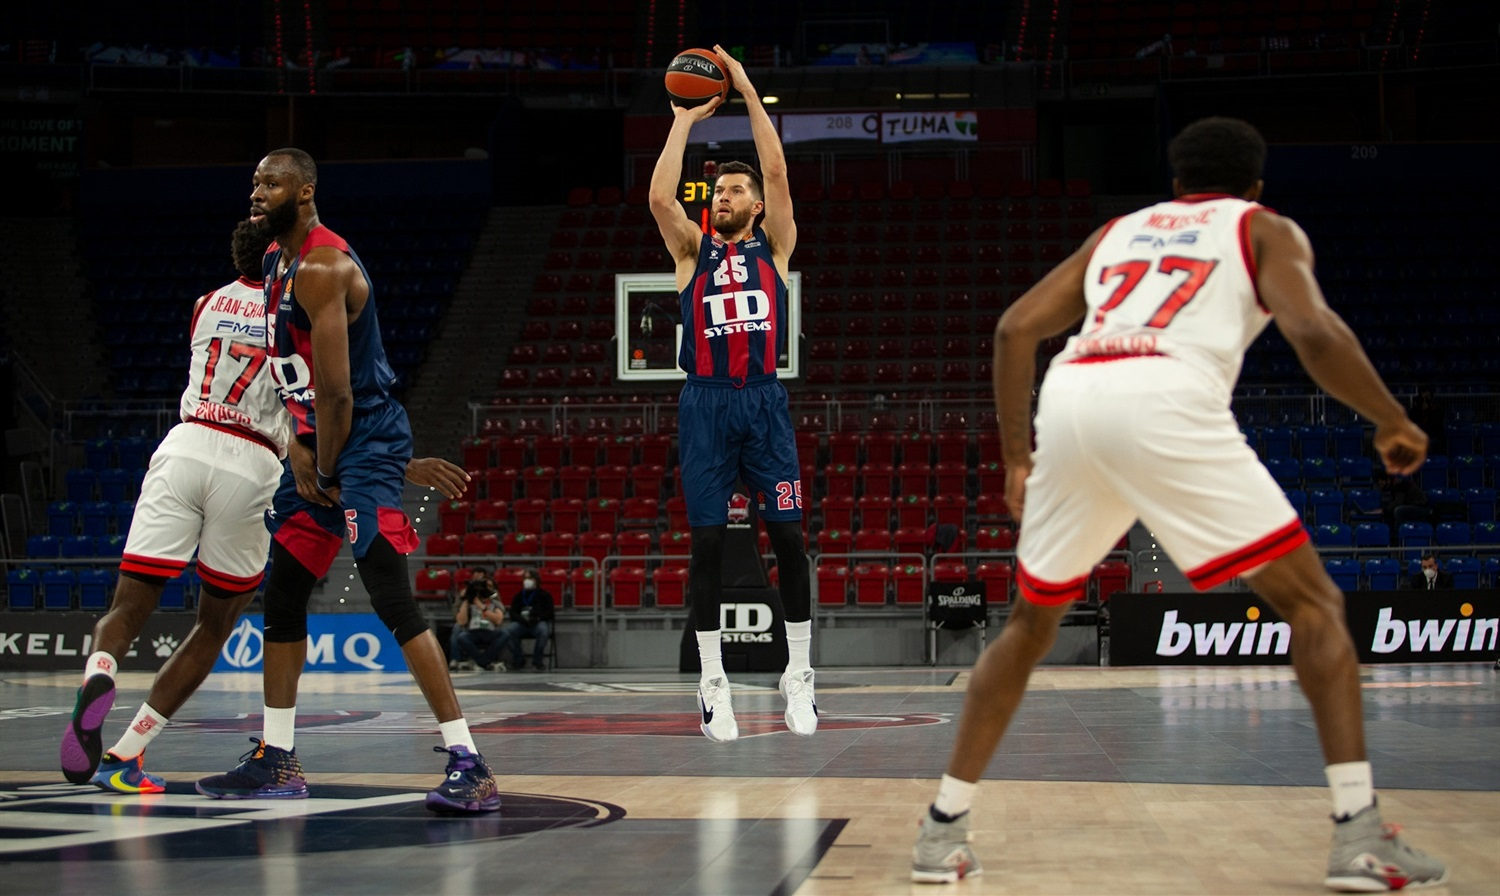 alec-peters-td-systems-baskonia-vitoria-gasteiz-eb20.jpg